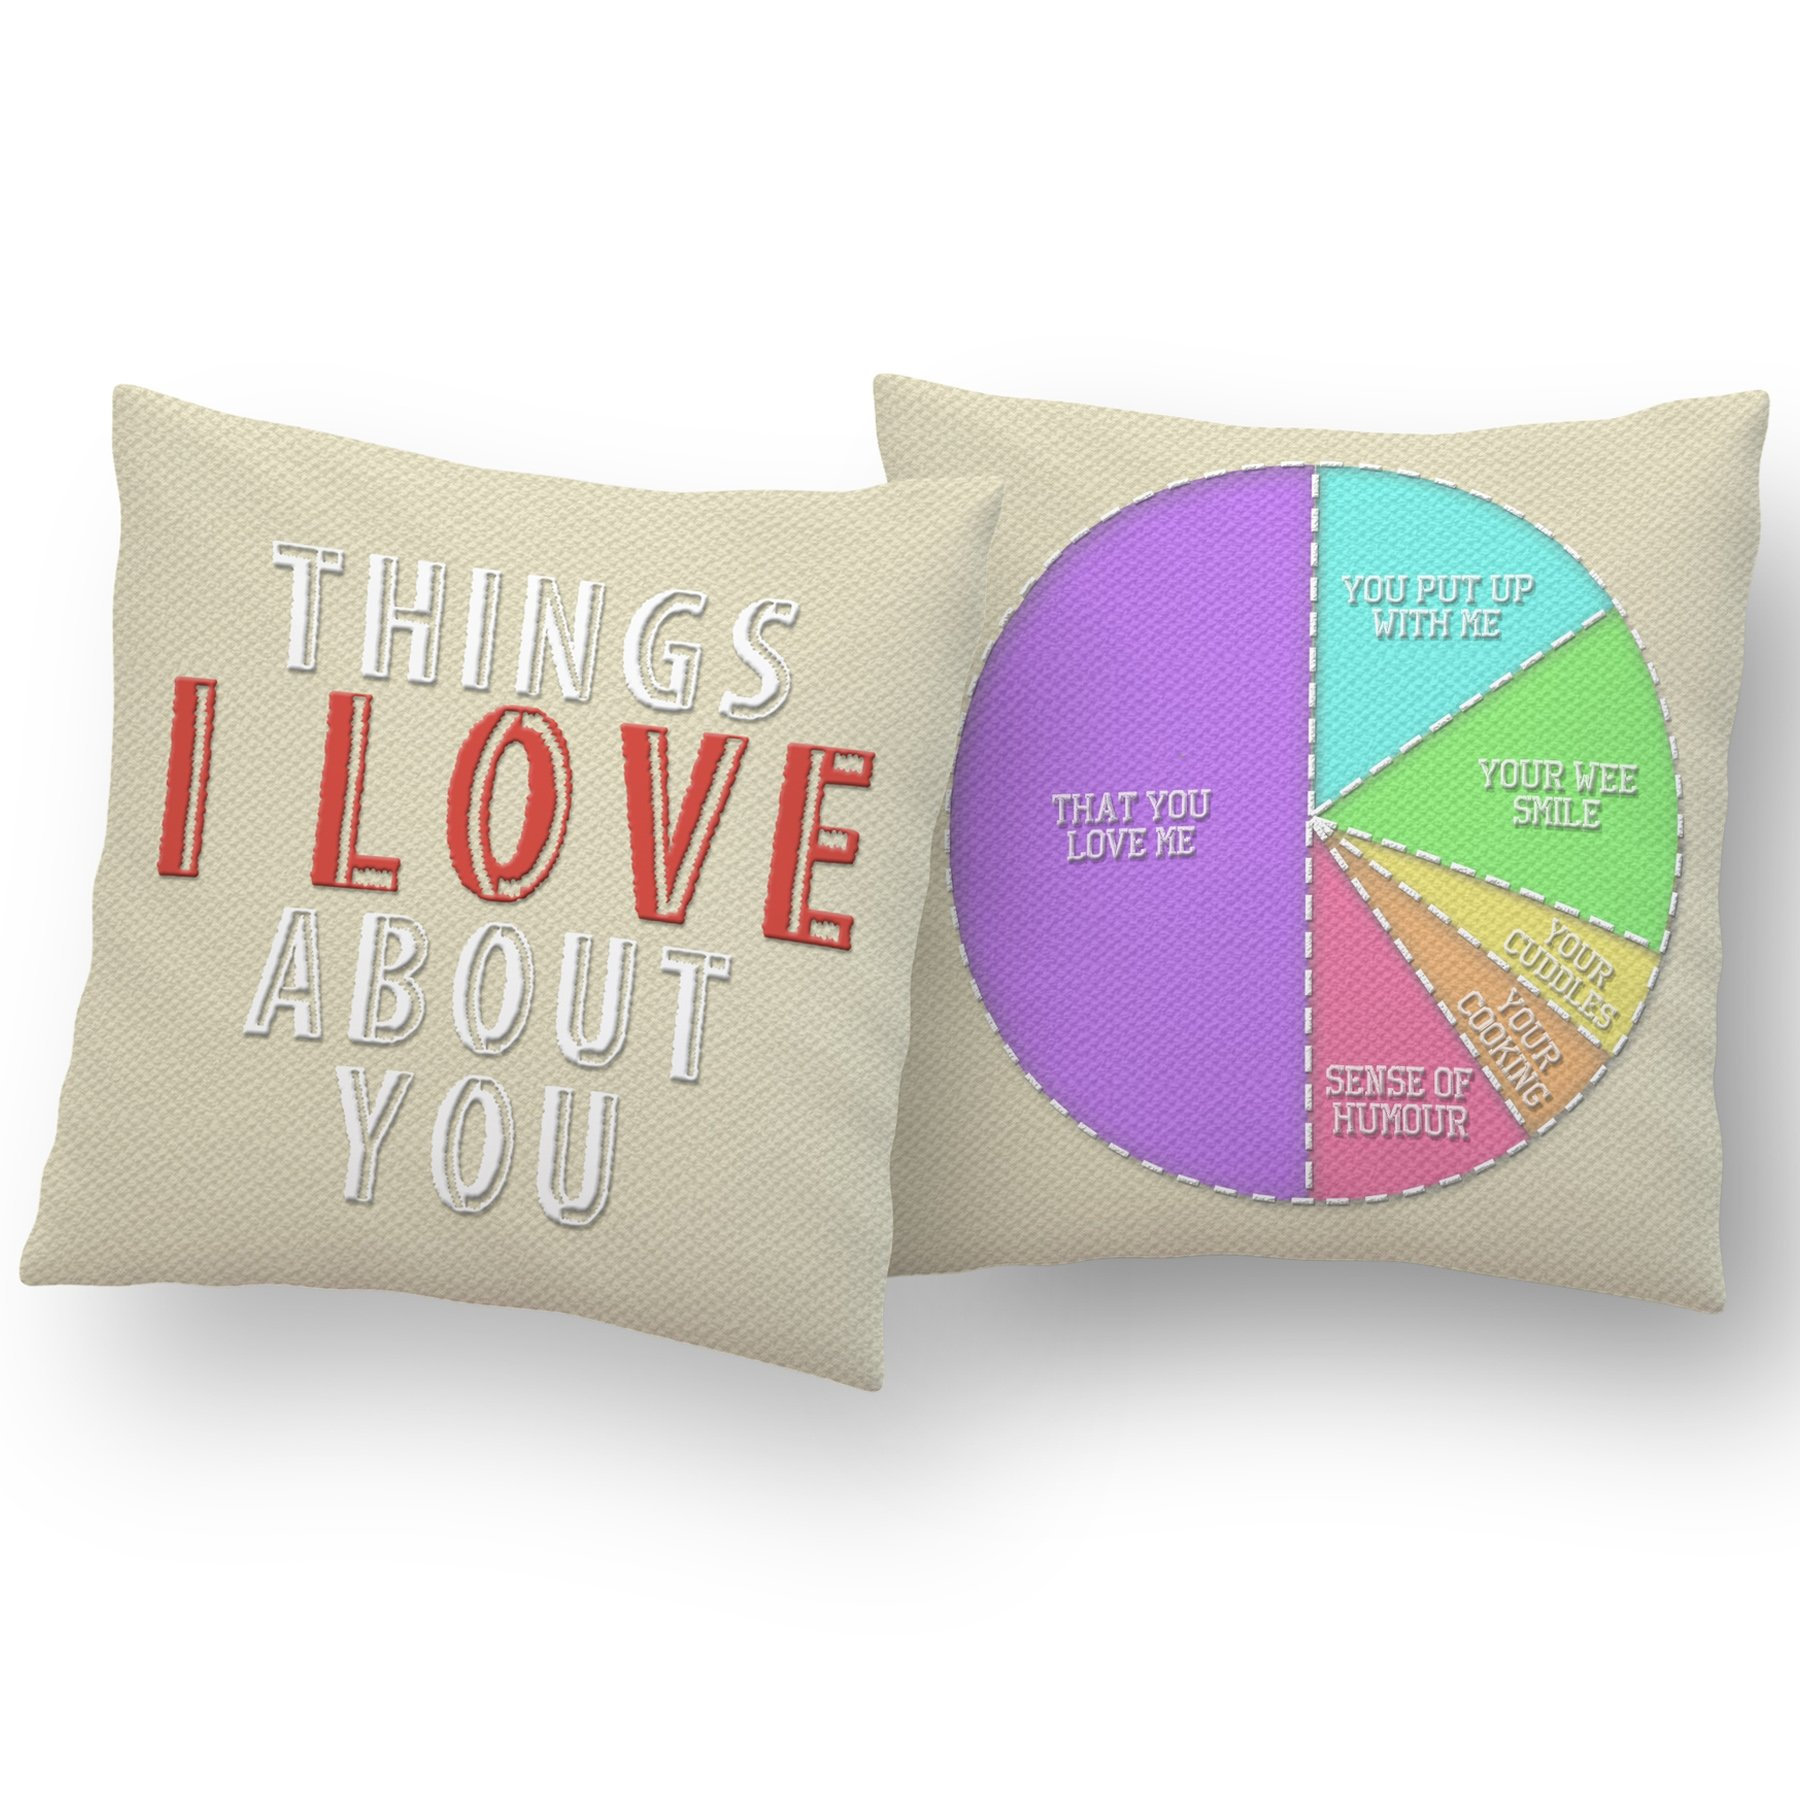 Things I Love About You Personalised Cushion (50 x 50 cm) by FMC (Image #1)